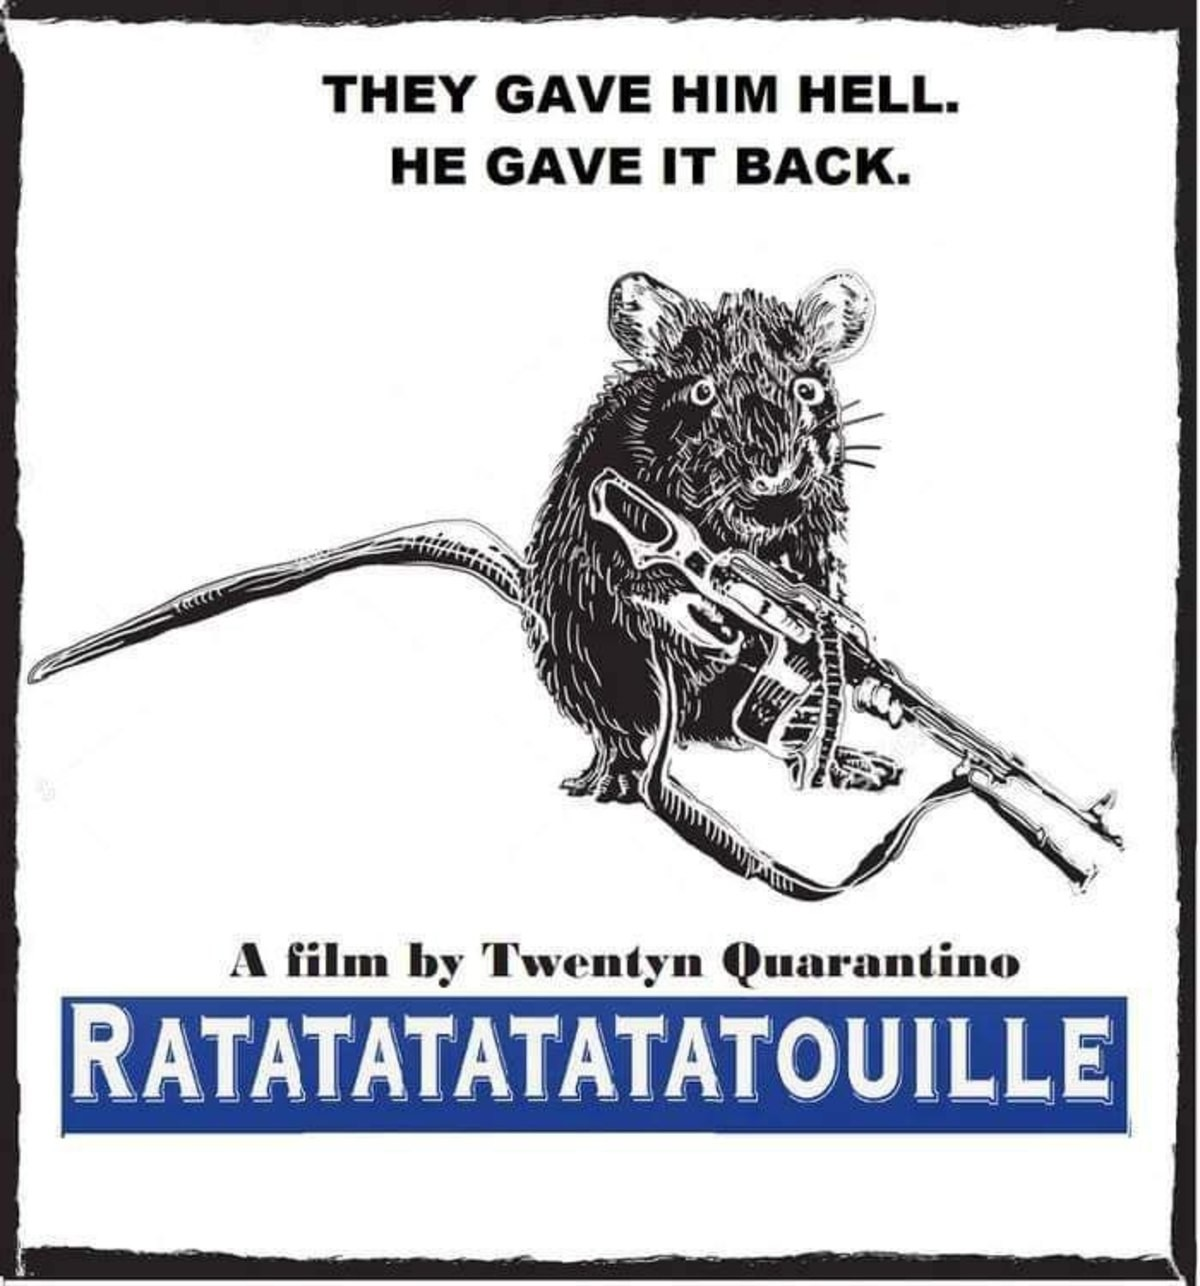 fine Duck. .. My name is Ratatouille, cybernetic orgasm, sent back in time to protract you.